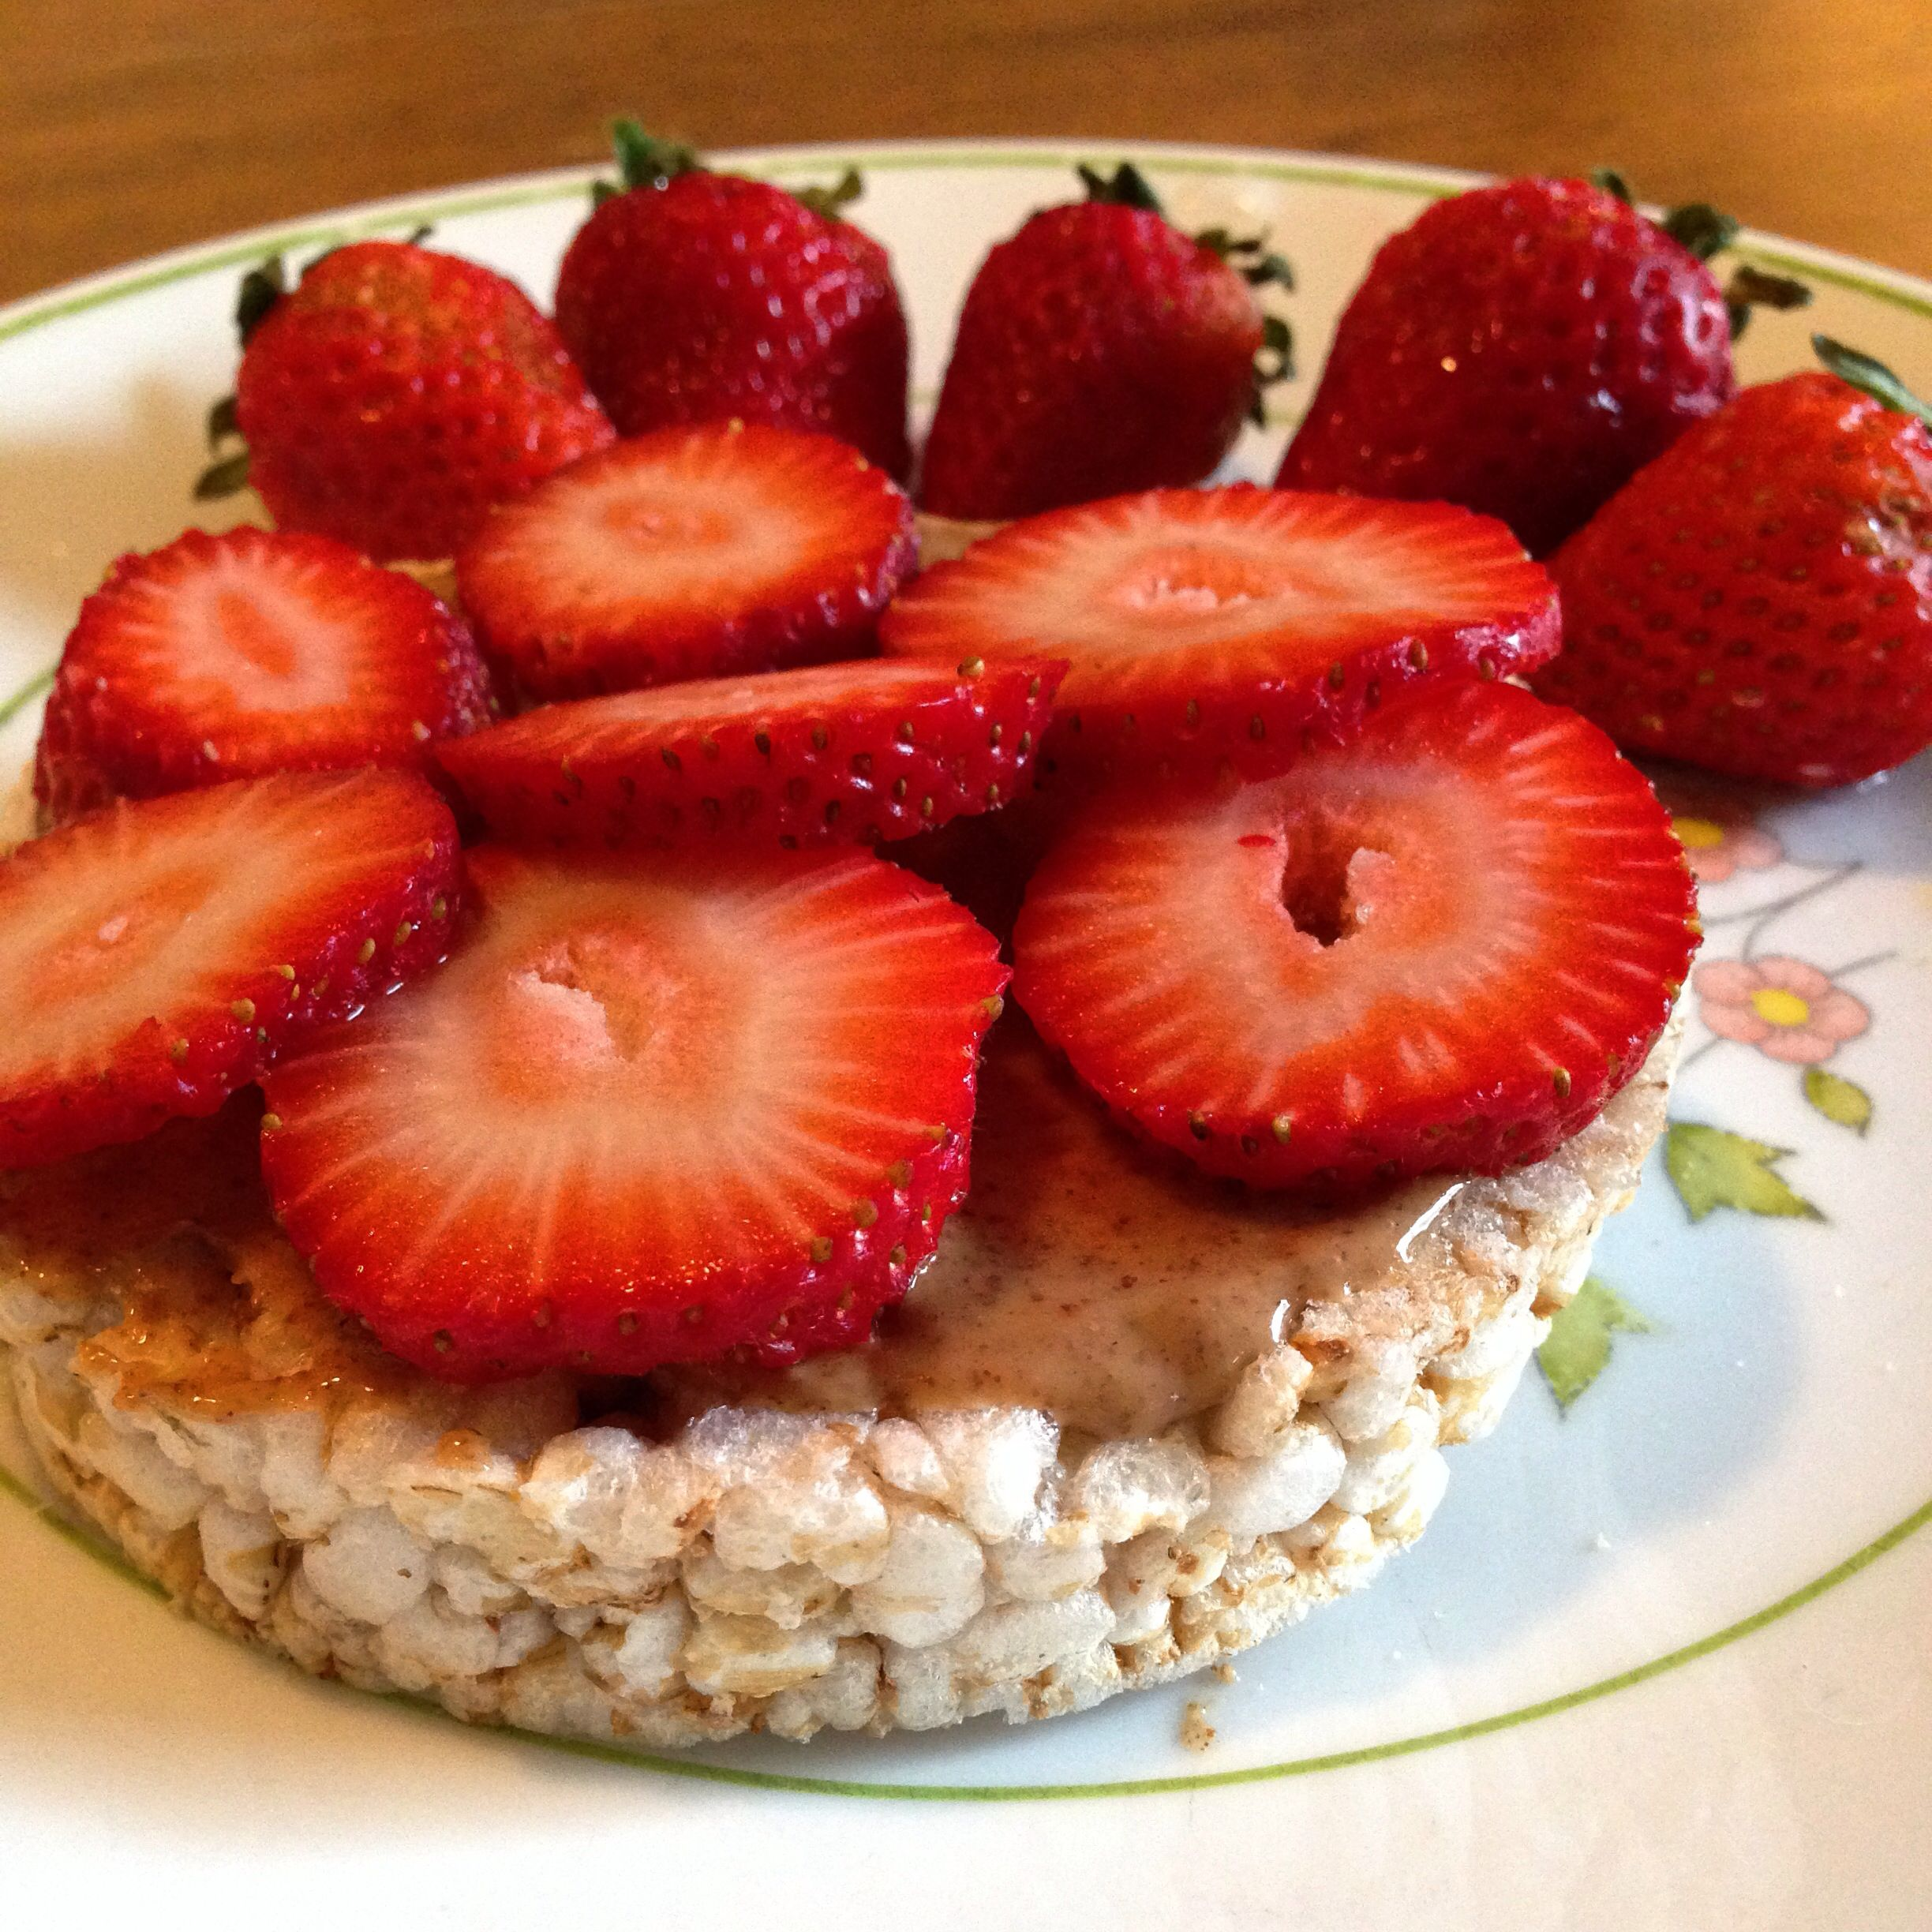 Organic rice cake topped with almond butter and slivered strawberries. Perfect afternoon snack!!